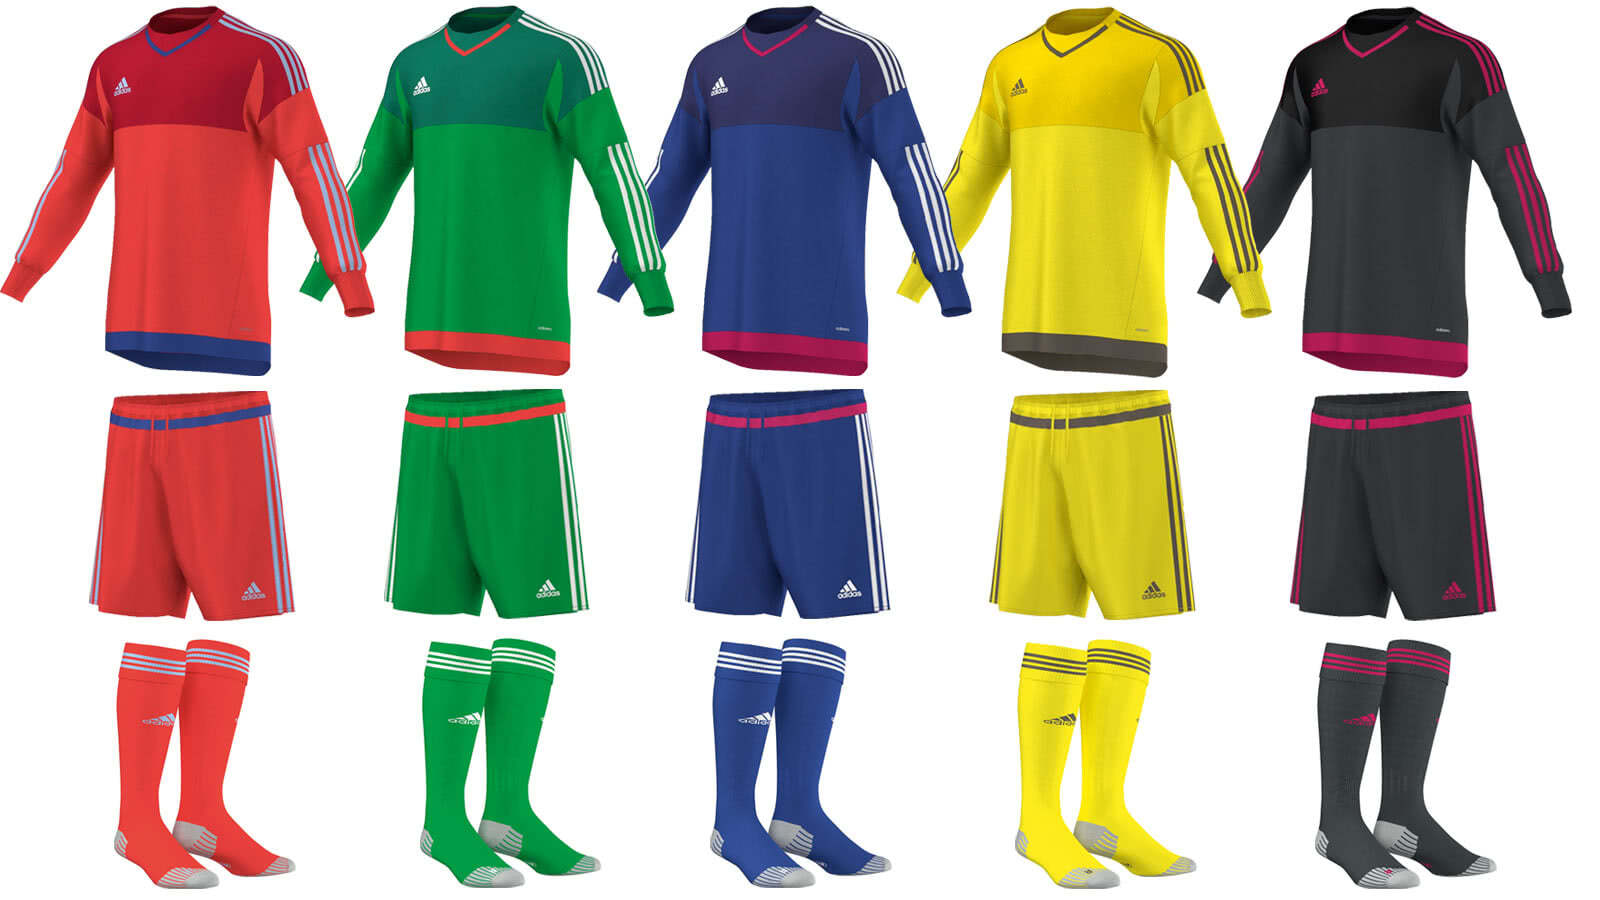 Adidas Torwart Set Top 15 GK